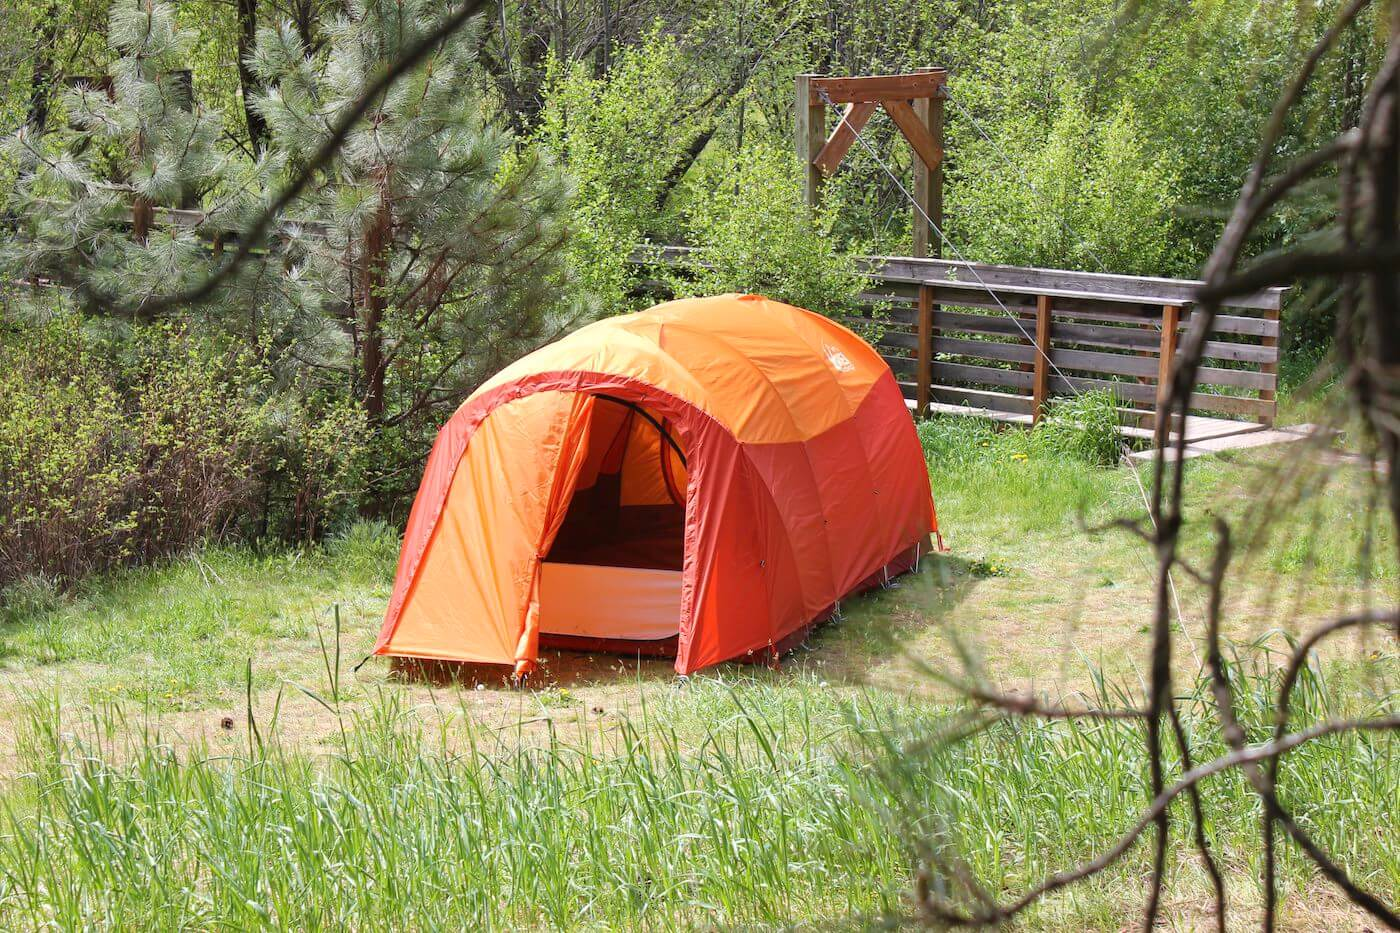 This best camping tents photo shows a camping tent set up at a campsite outside.